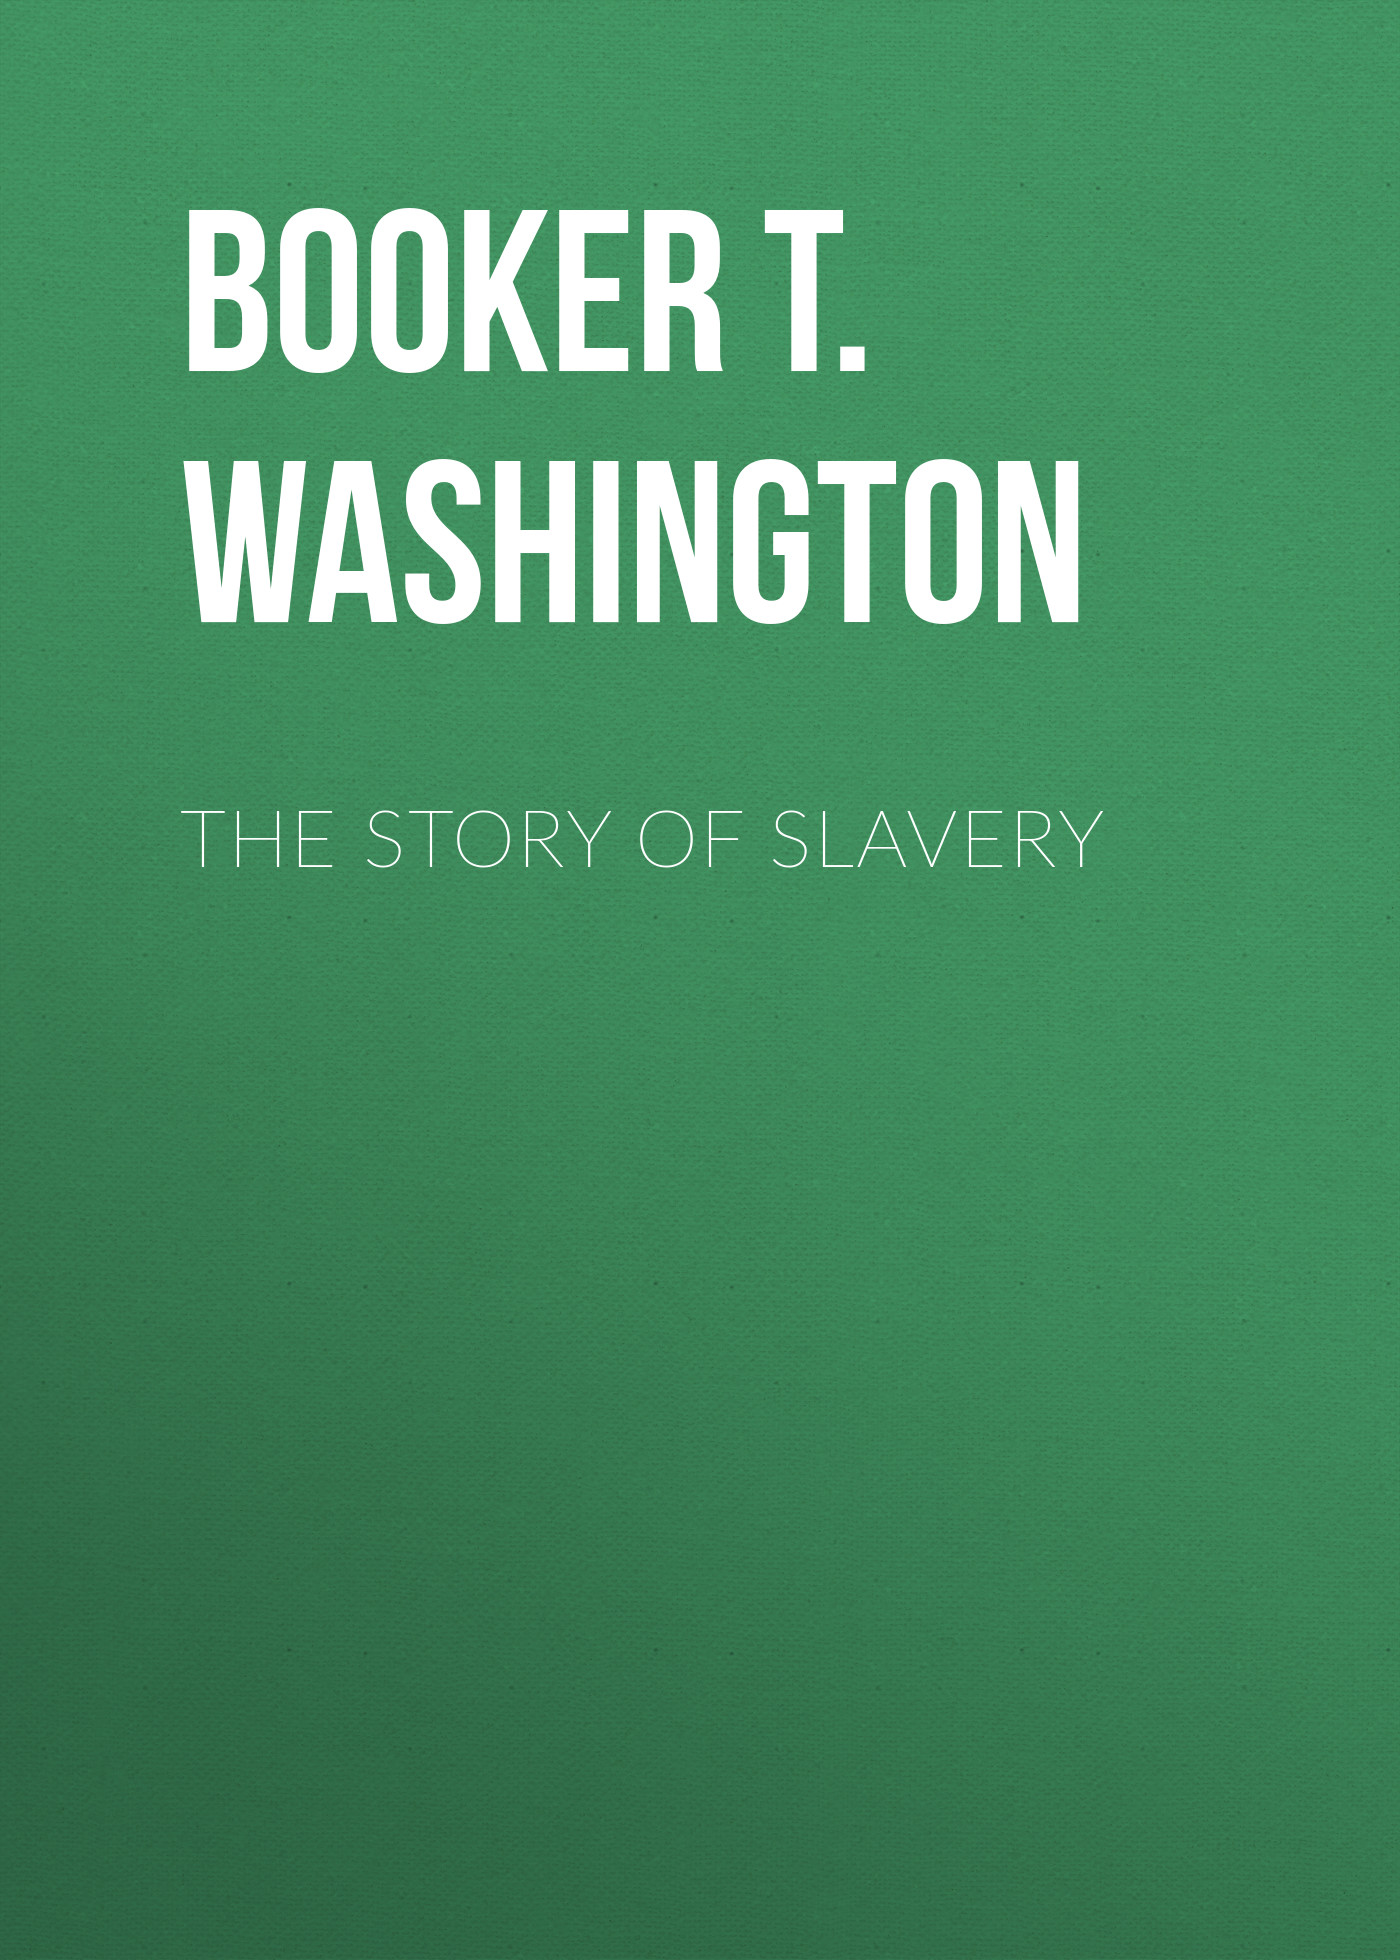 Booker T. Washington The Story of Slavery